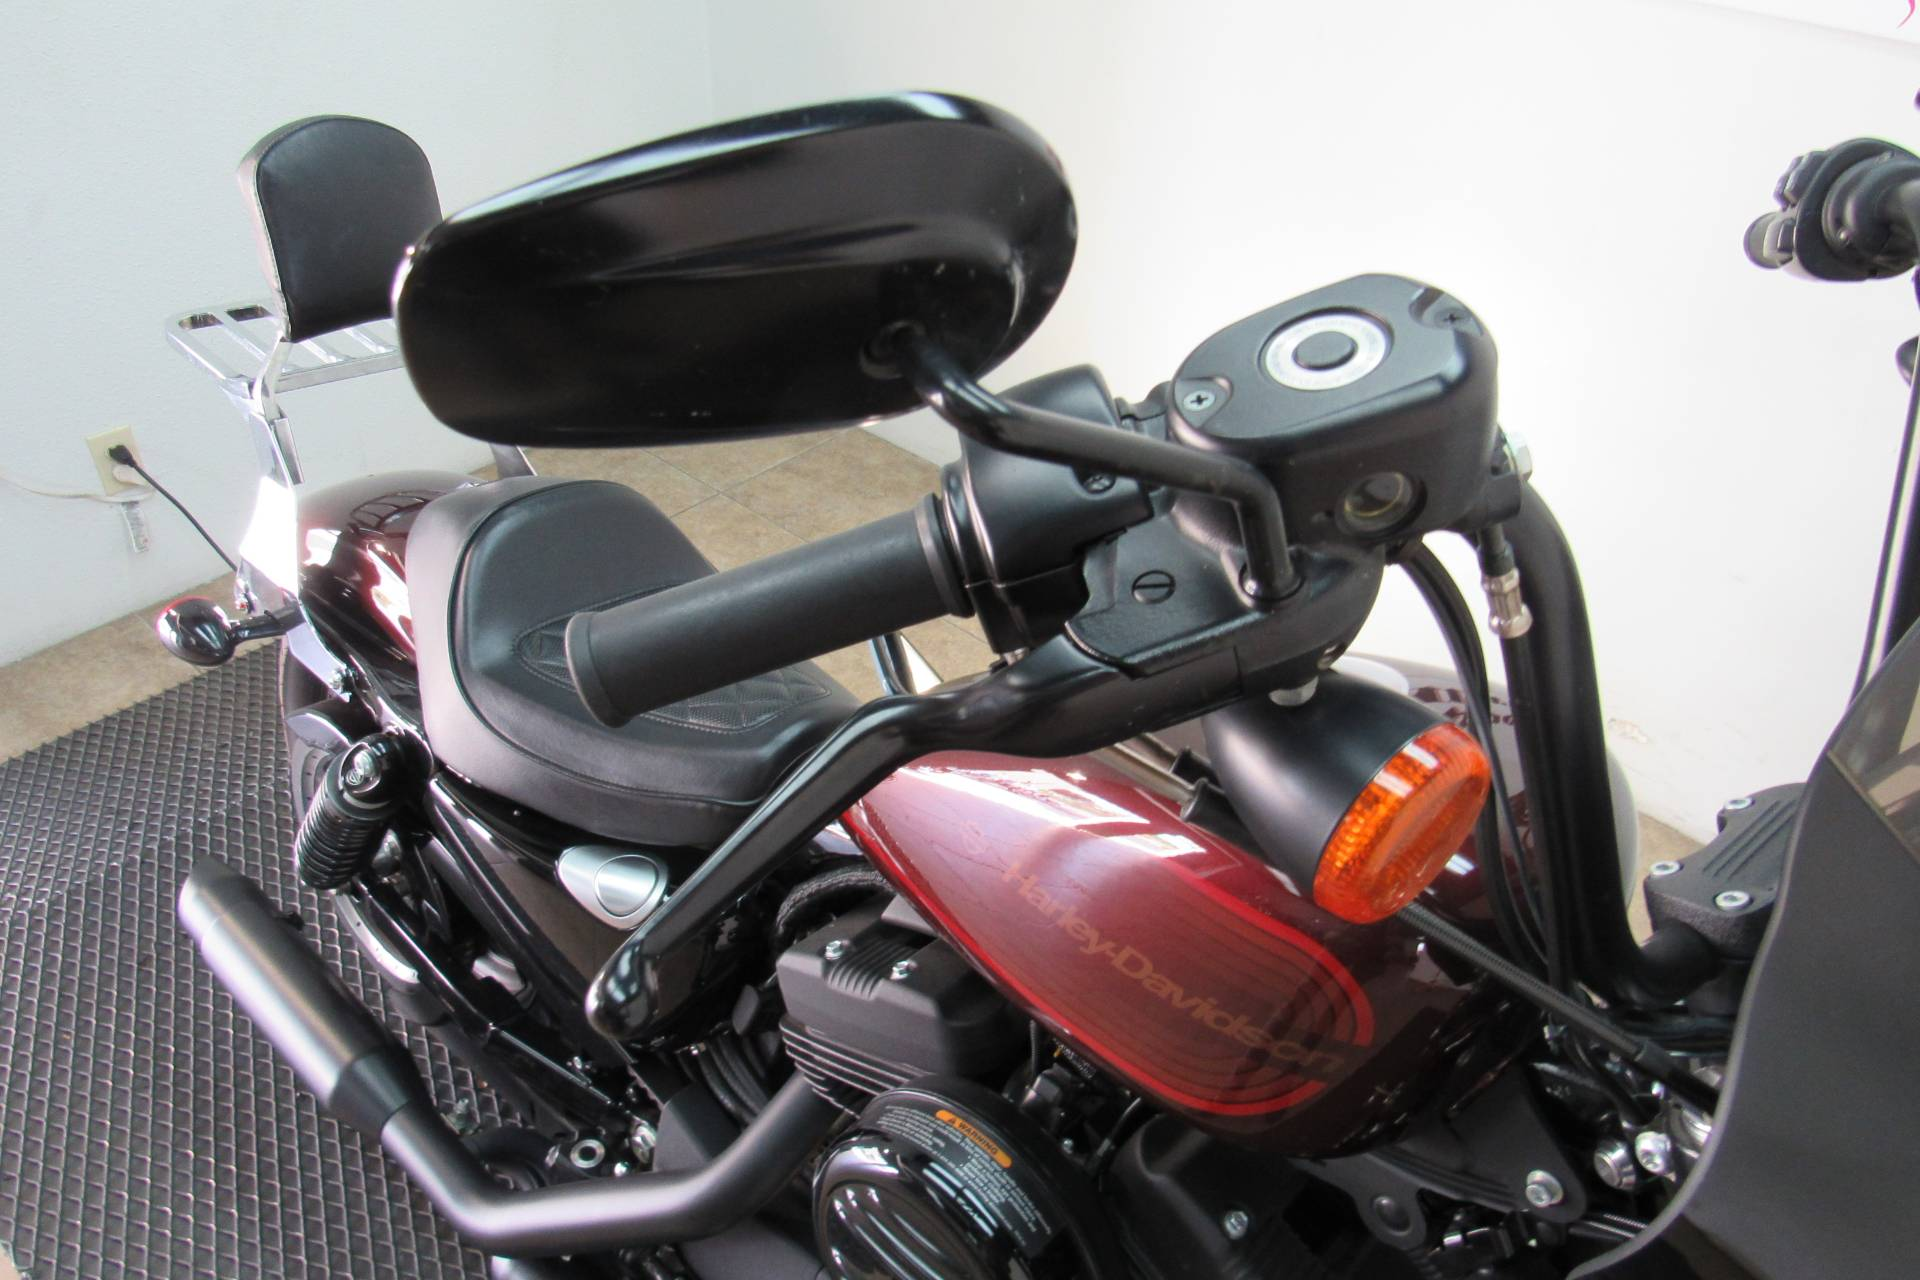 2019 Harley-Davidson IRON 1200 in Temecula, California - Photo 15